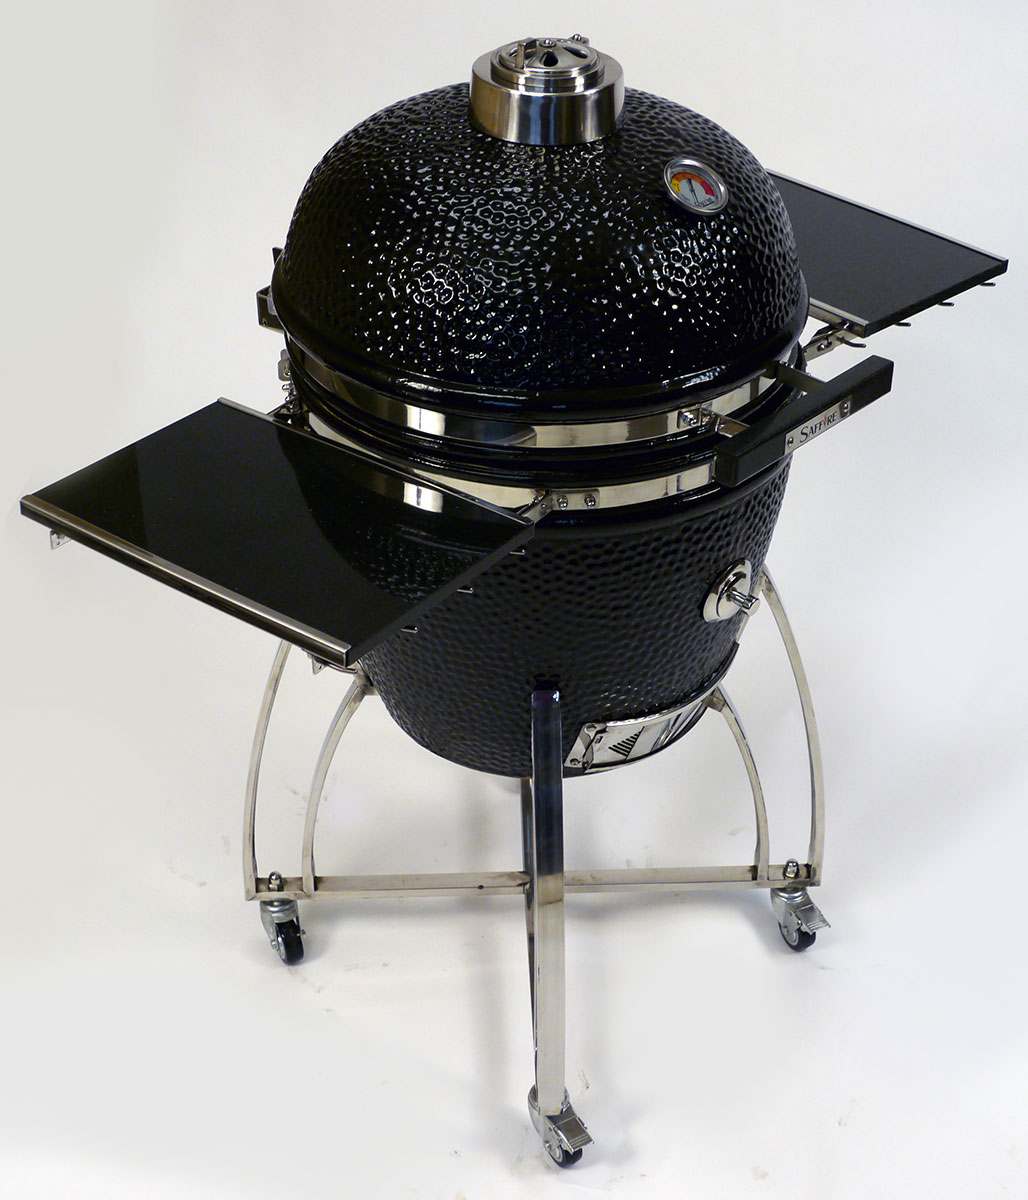 2014 Black Saffire Grill & Smoker with Black Granite Shelves & Handle